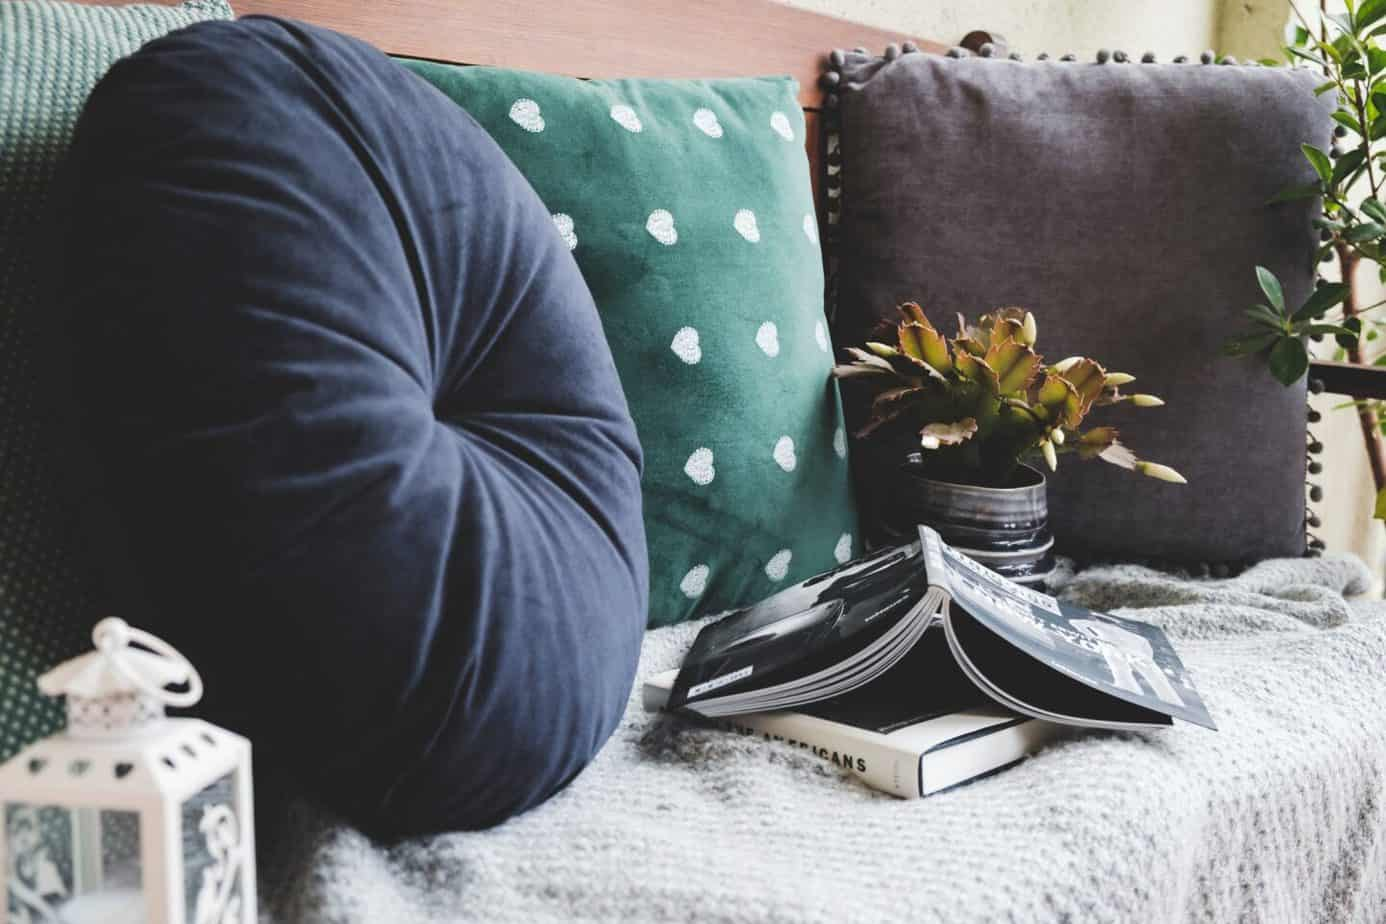 Three cushions, some books, and a house plant for budget ways to do up your living room.